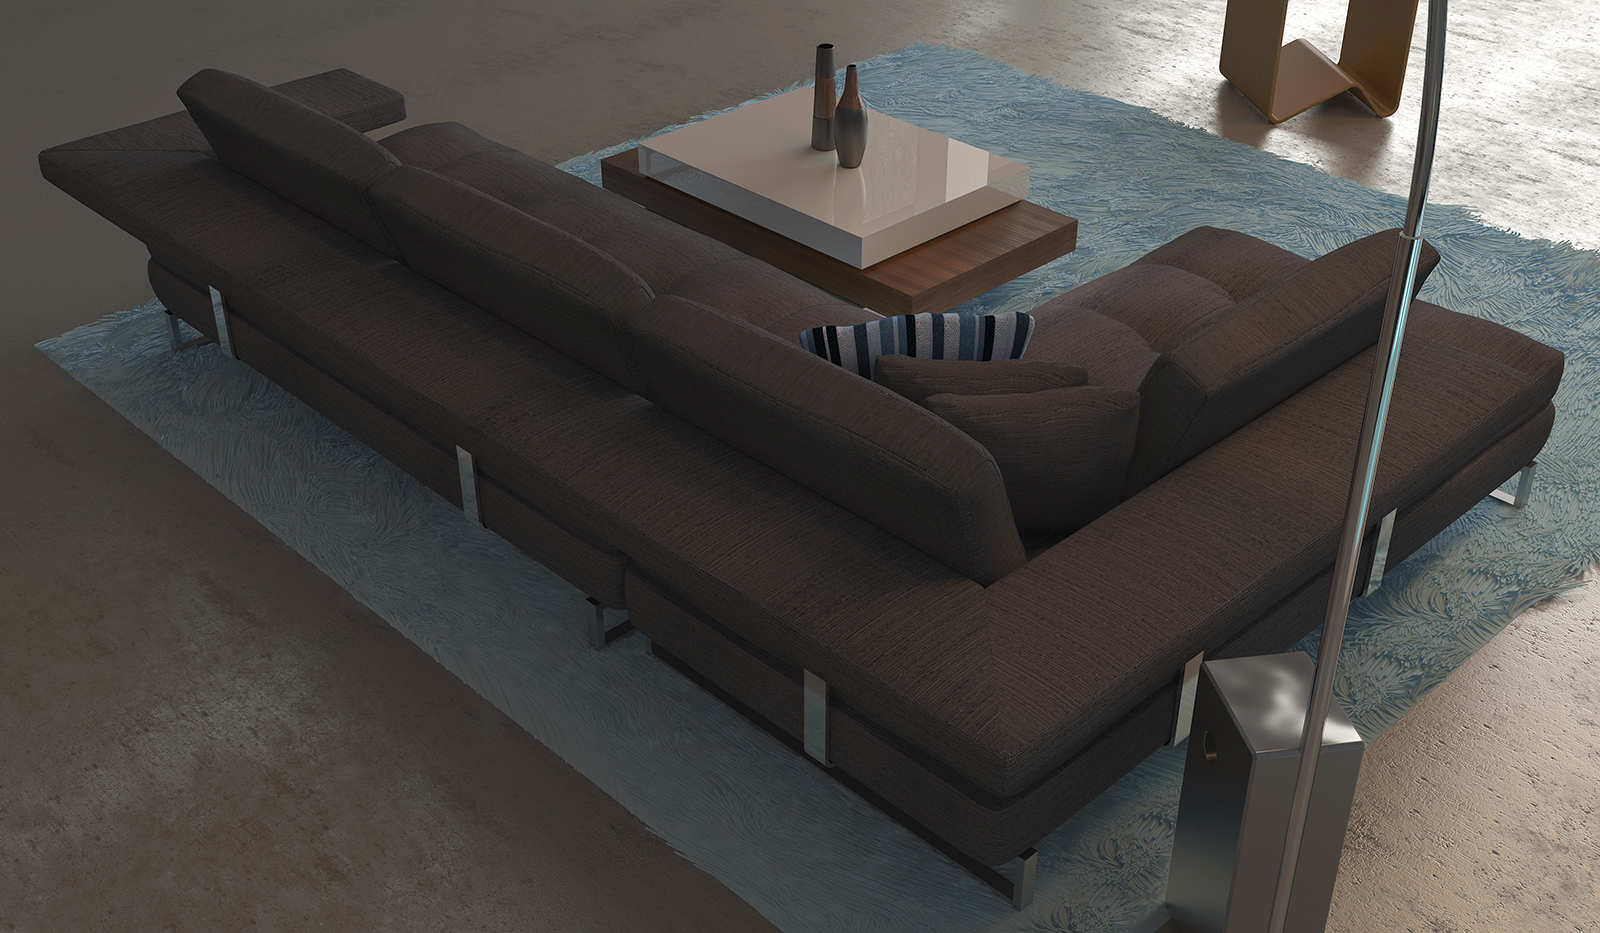 Milano.de_furniture_Sofa & table_04_Yianart